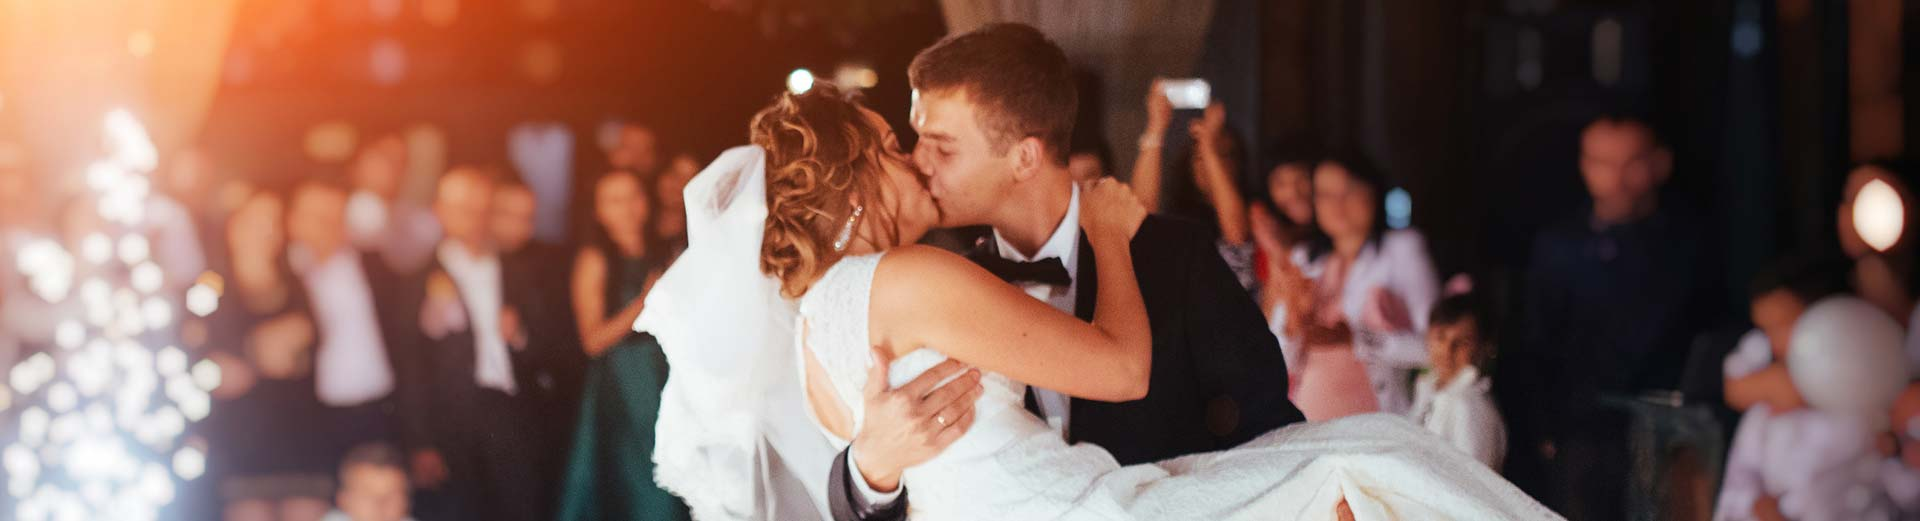 Bride and Groom share a passionate kiss on the dance floor